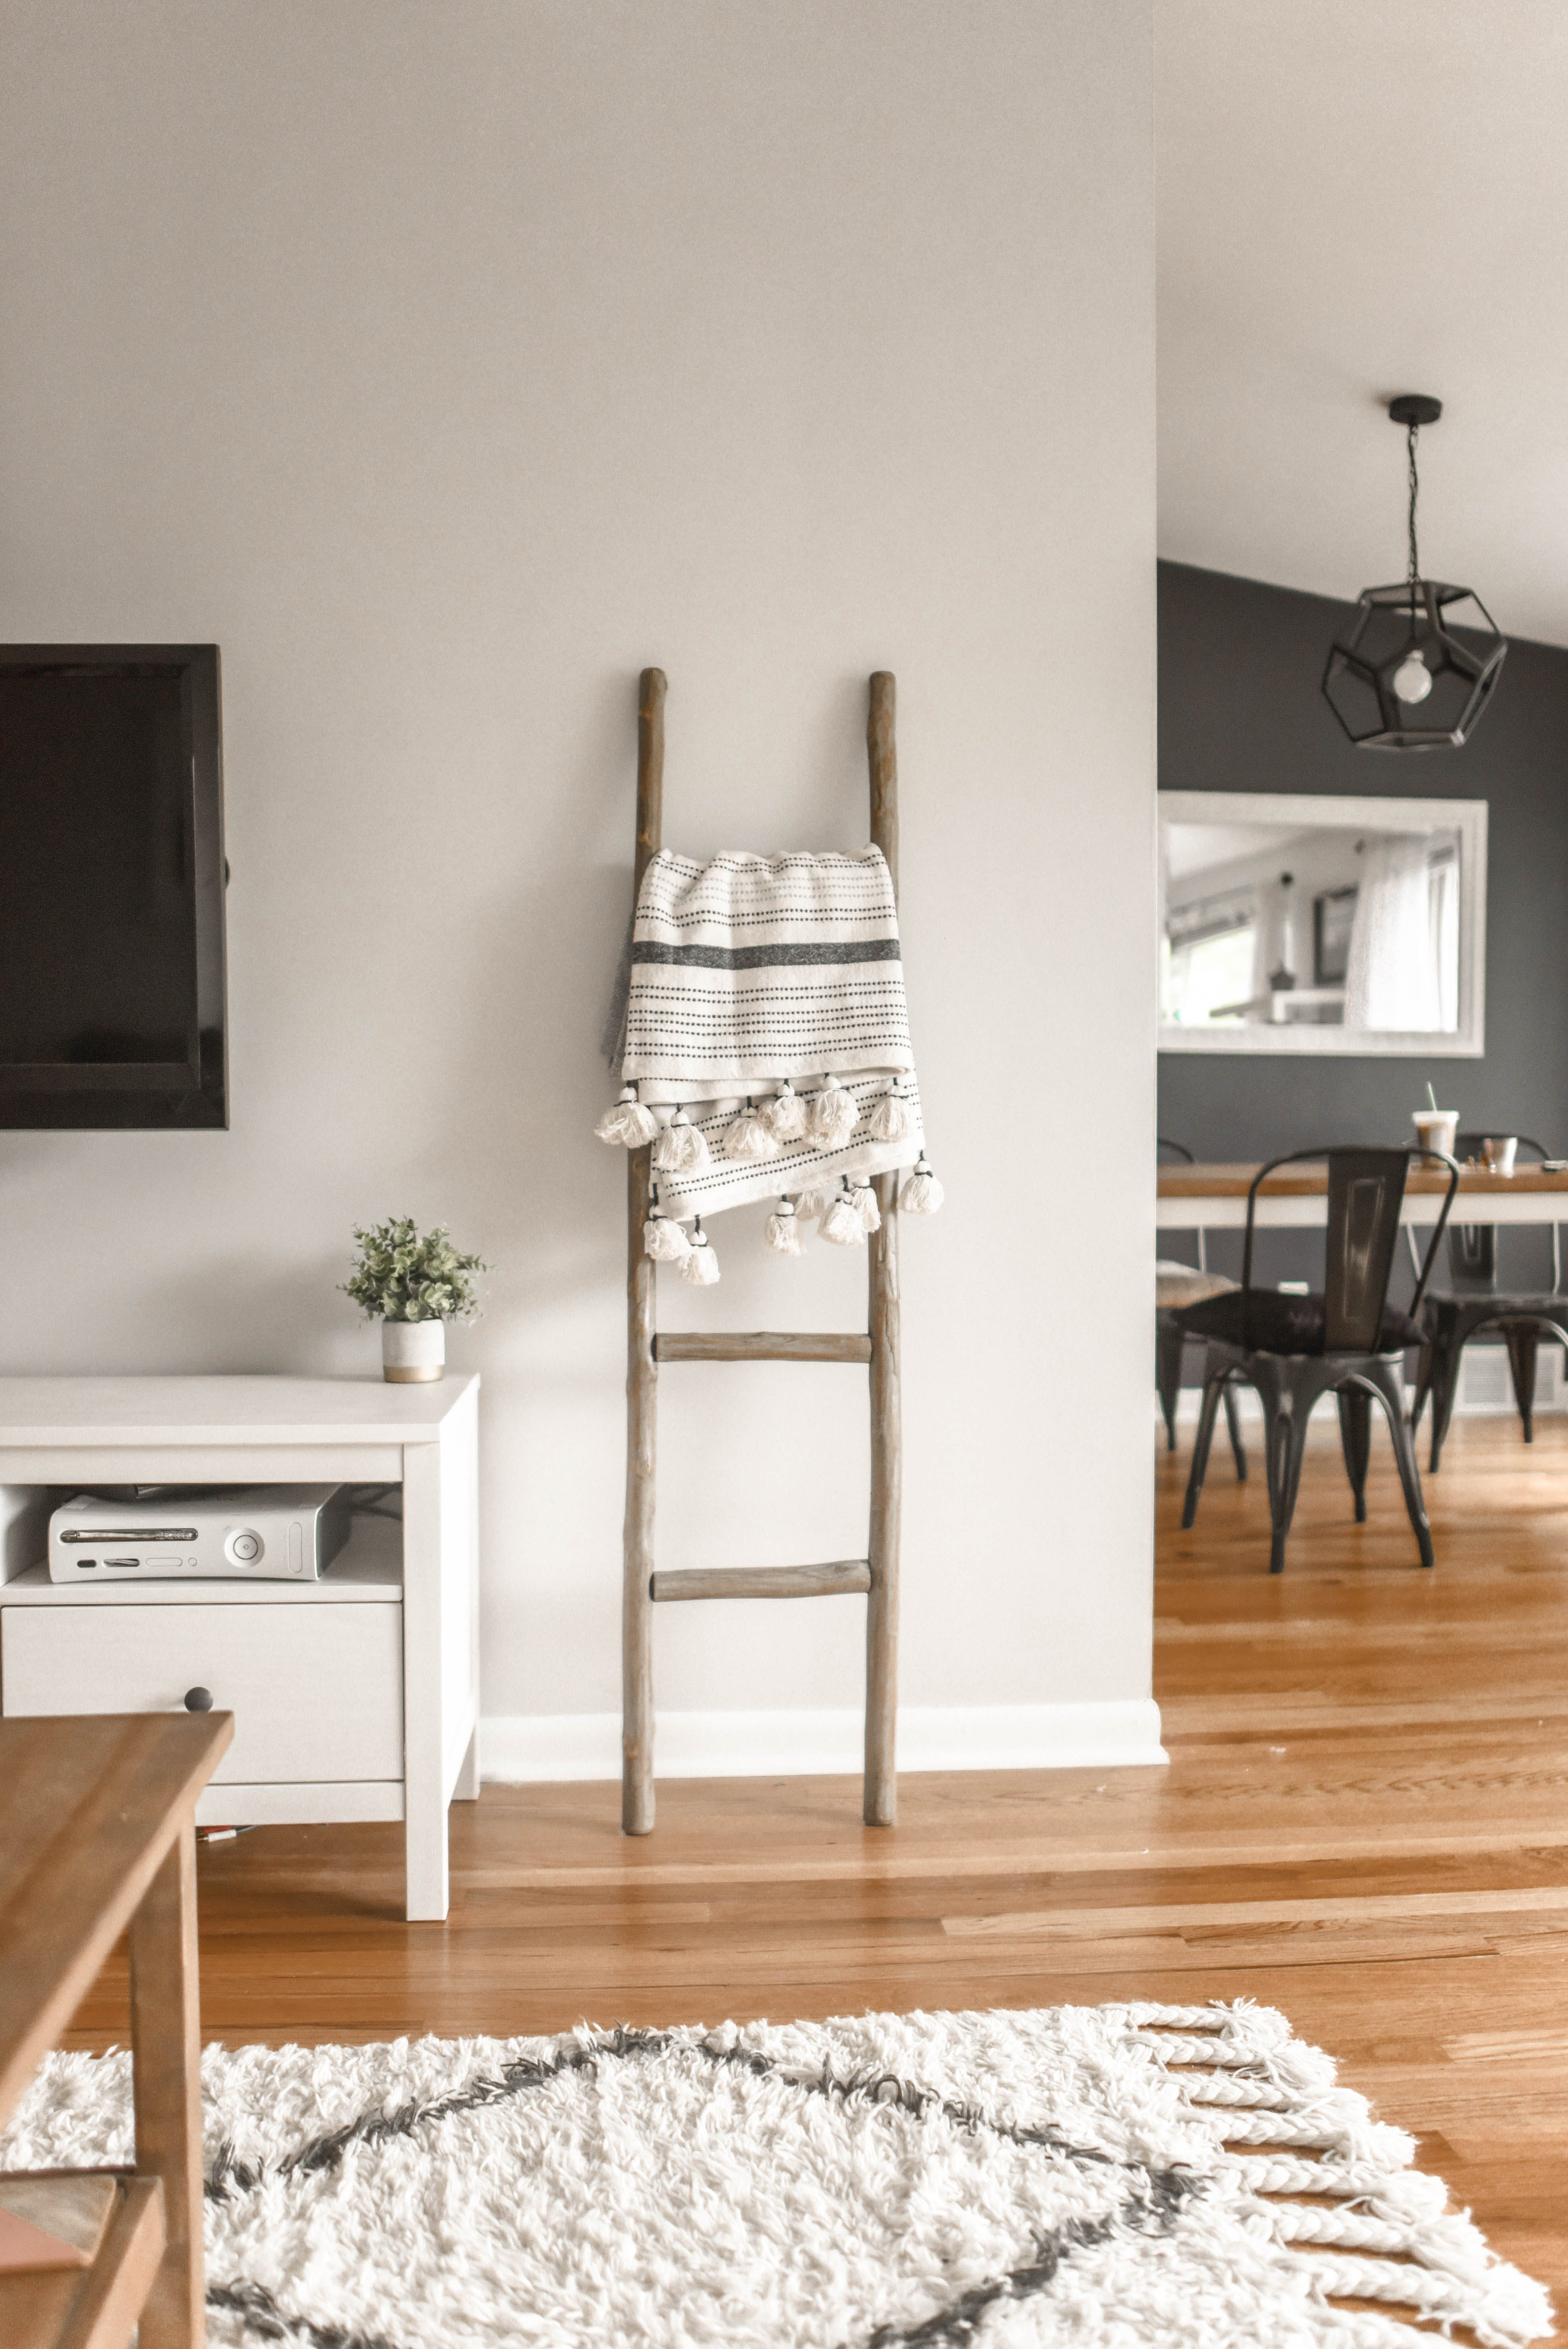 Gray Wooden Ladder on White Painted Wall